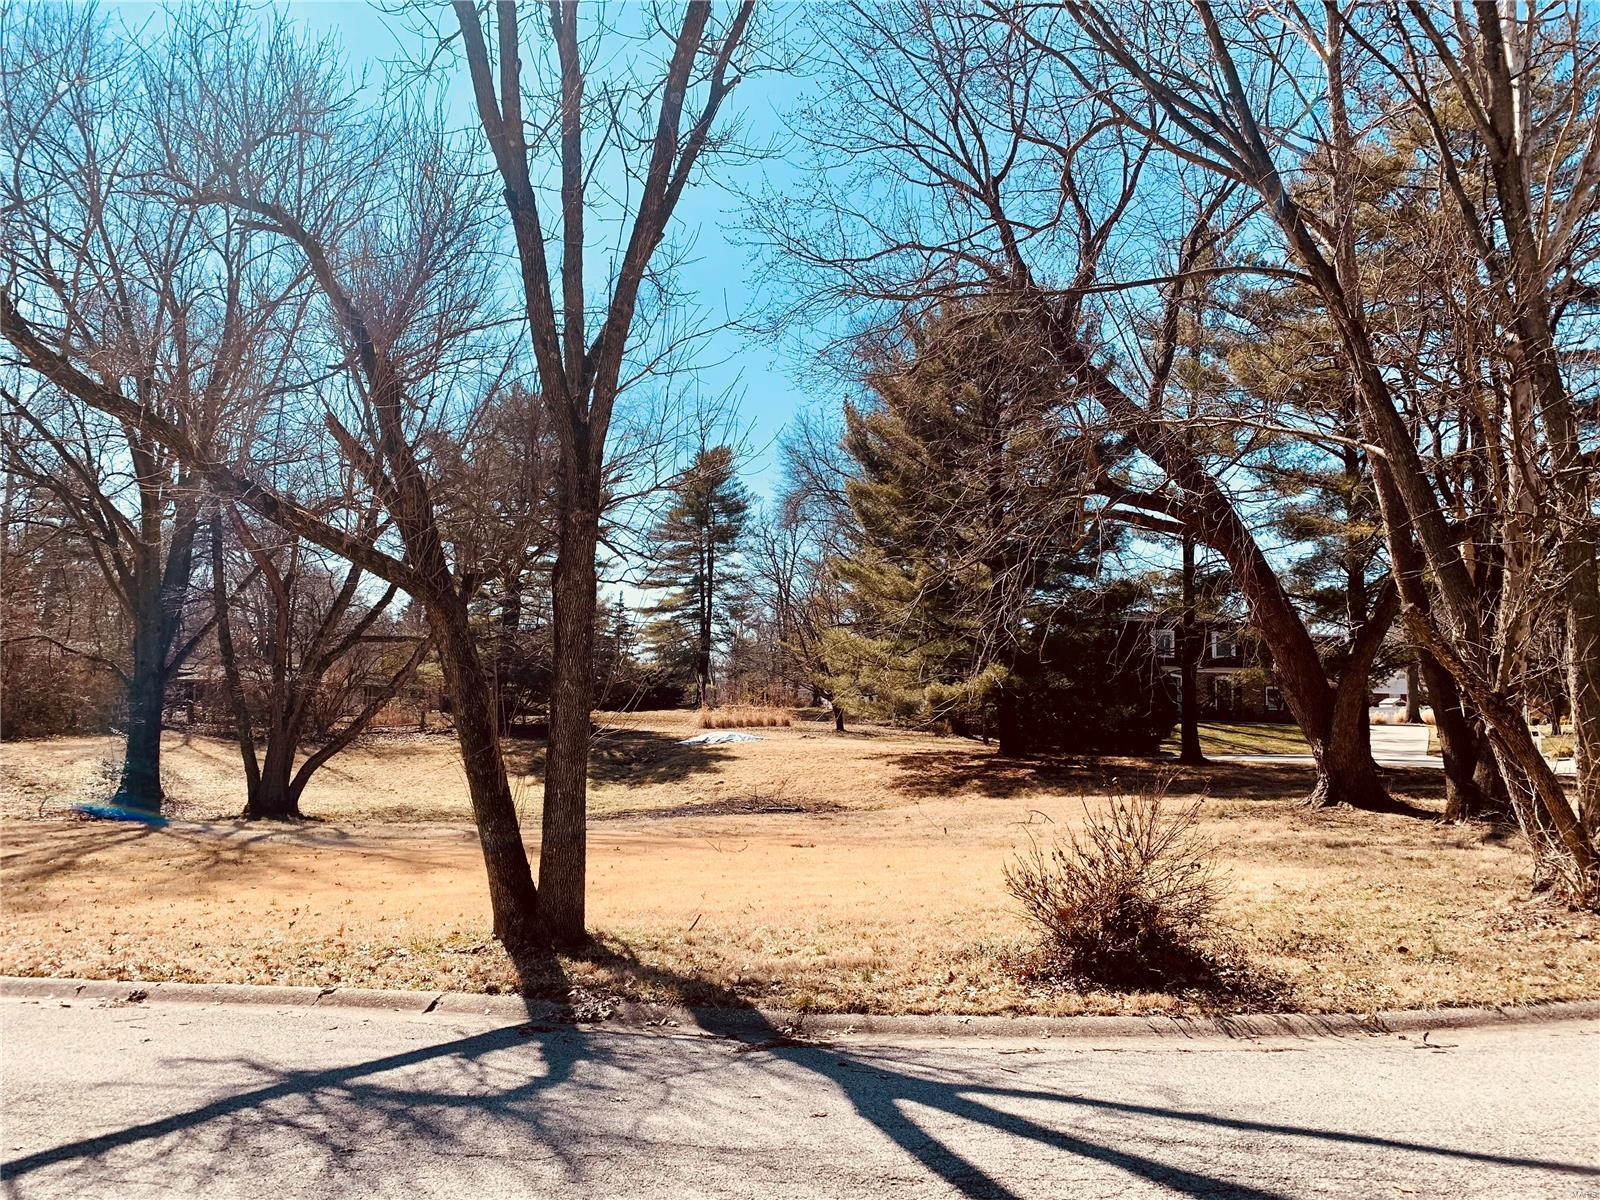 1800 Blk Cherokee Lane Property Photo - Godfrey, IL real estate listing